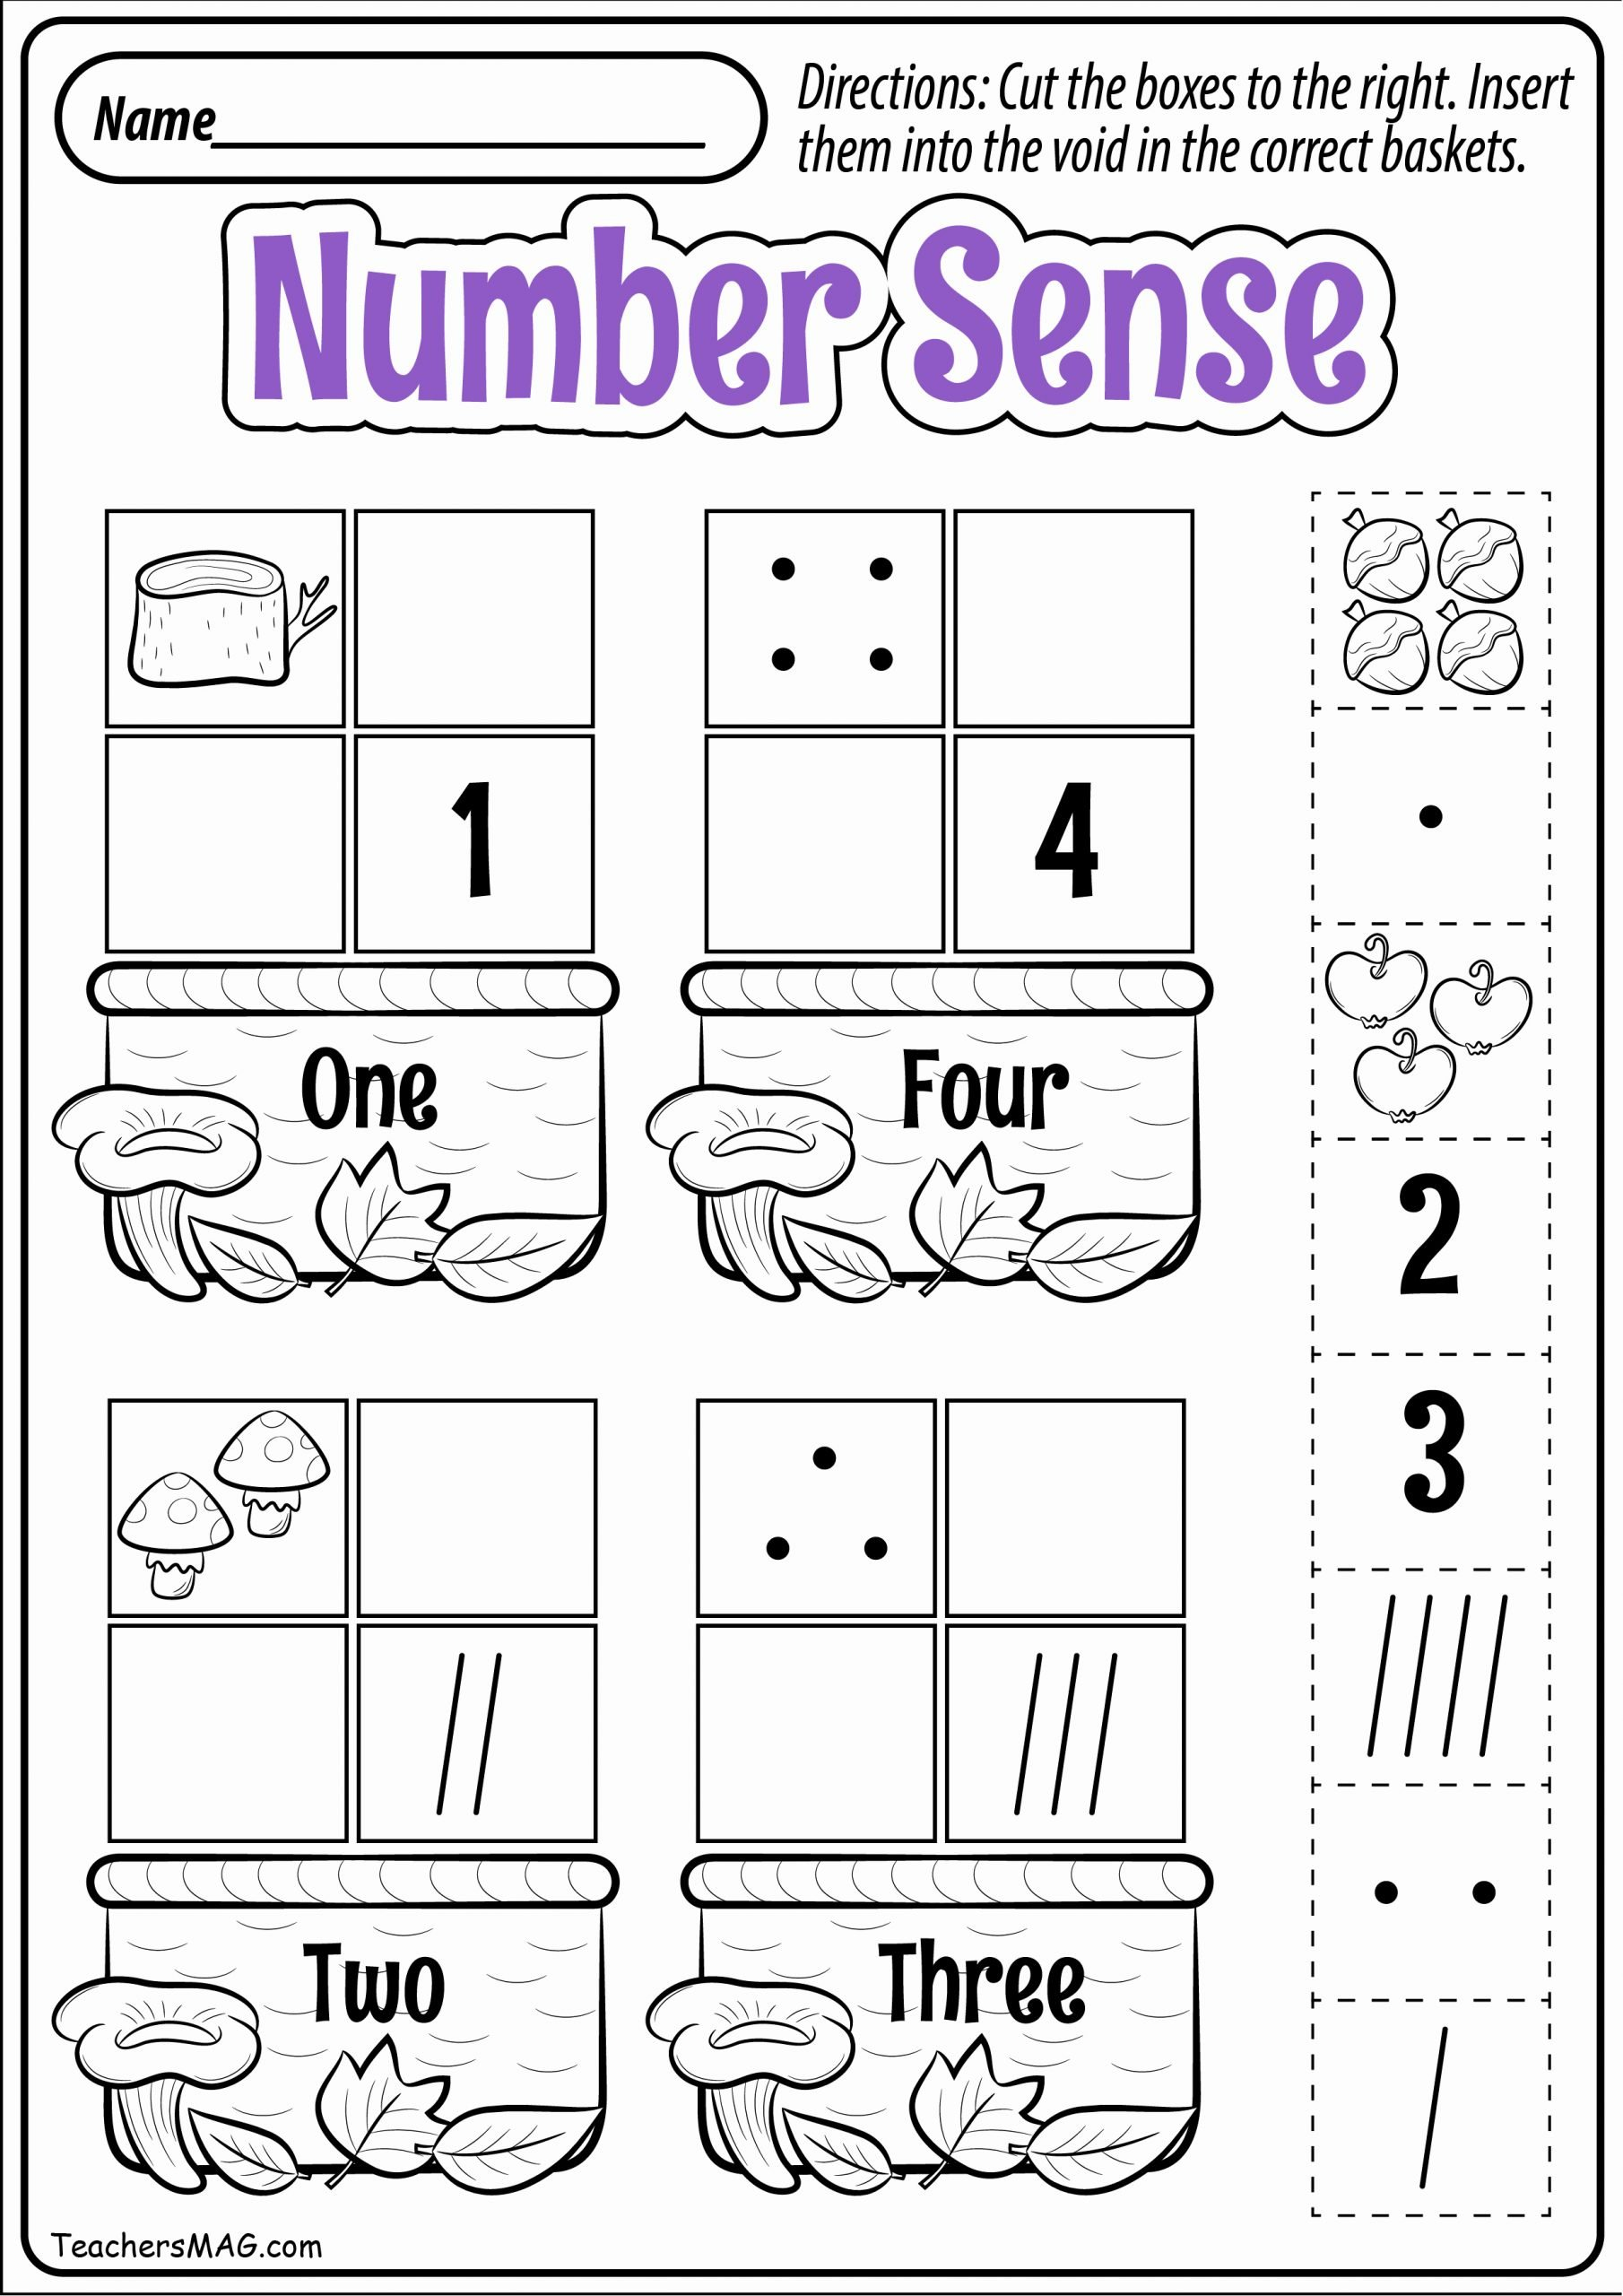 Number Sense Worksheets for Preschoolers Lovely Teachersmag